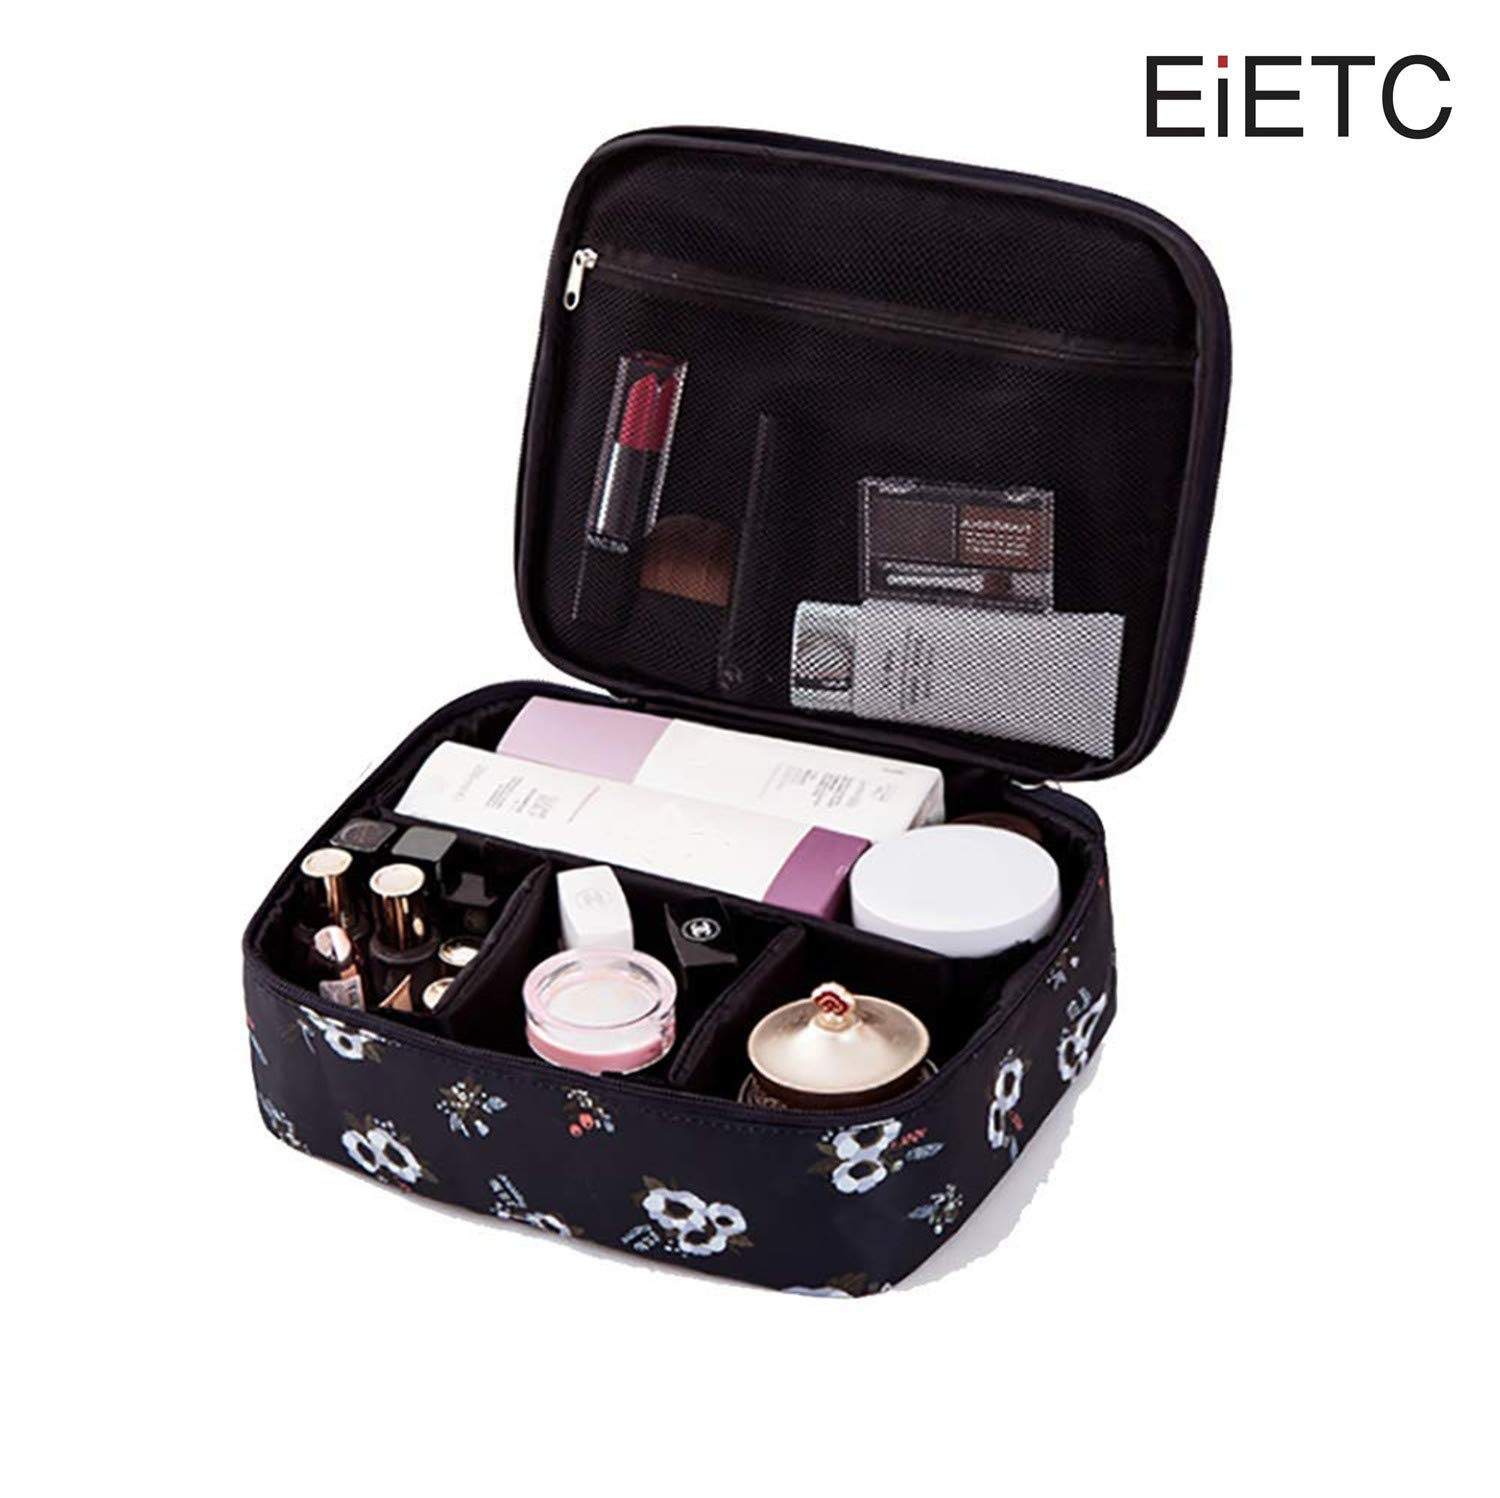 EIETC Portable Travel Makeup Cosmetic Bags Organizer Multifunction Case Toiletry Bags for Women black